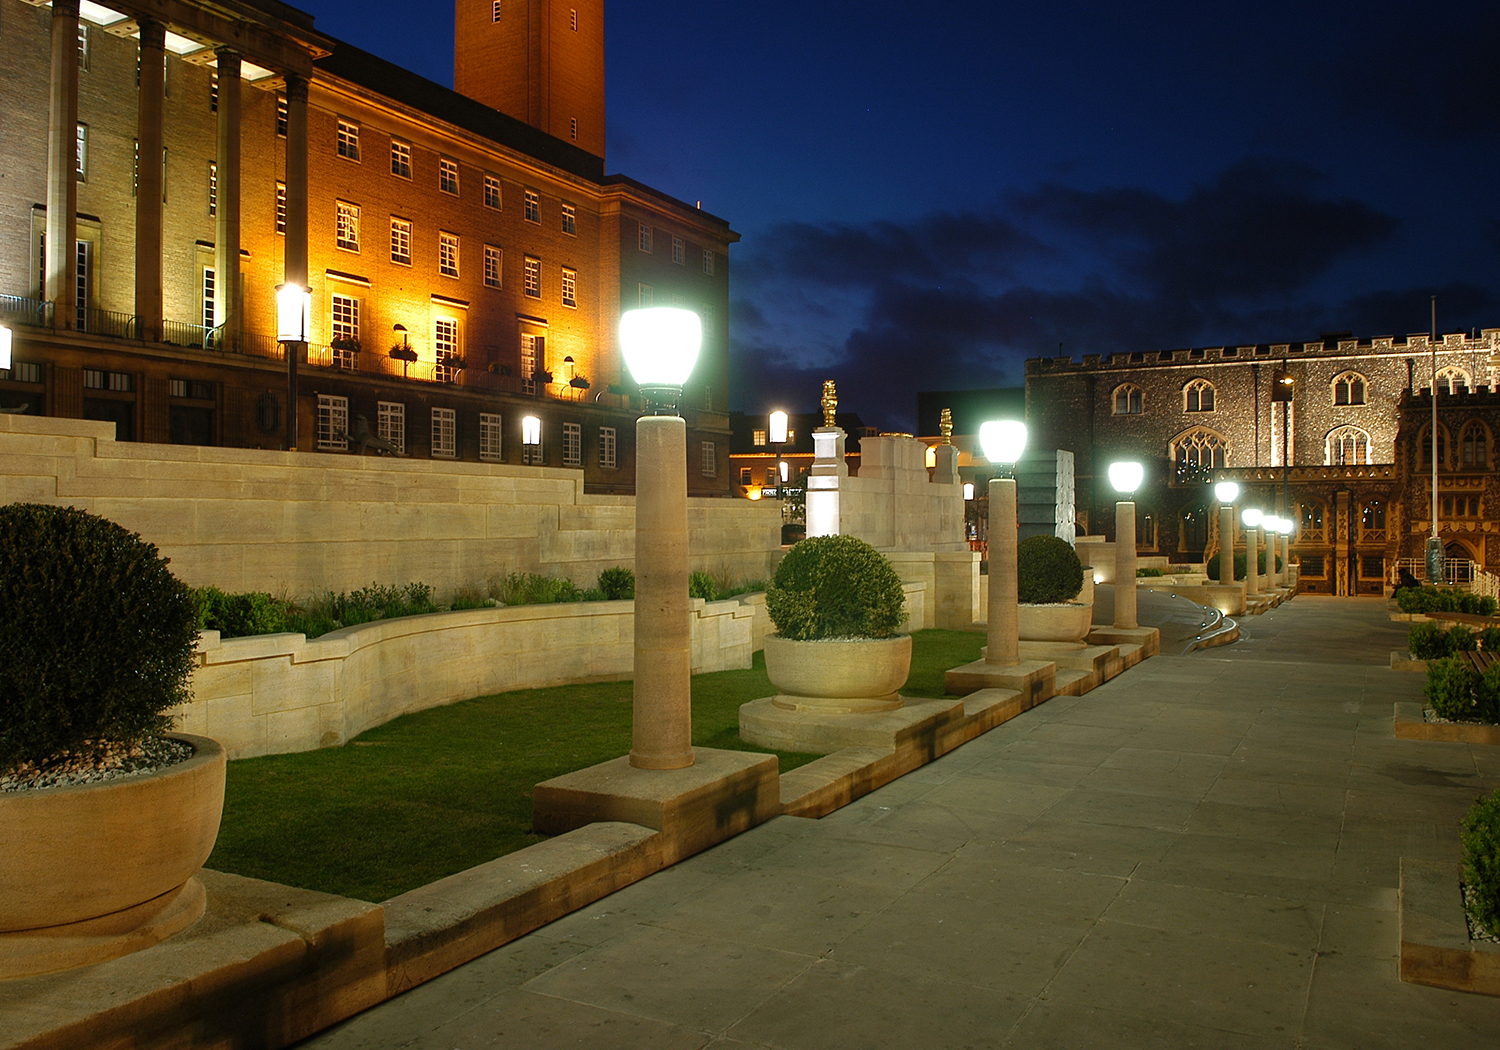 Projects-ParksPublicRealm-NorwichMemorial-NightView-1500x1050